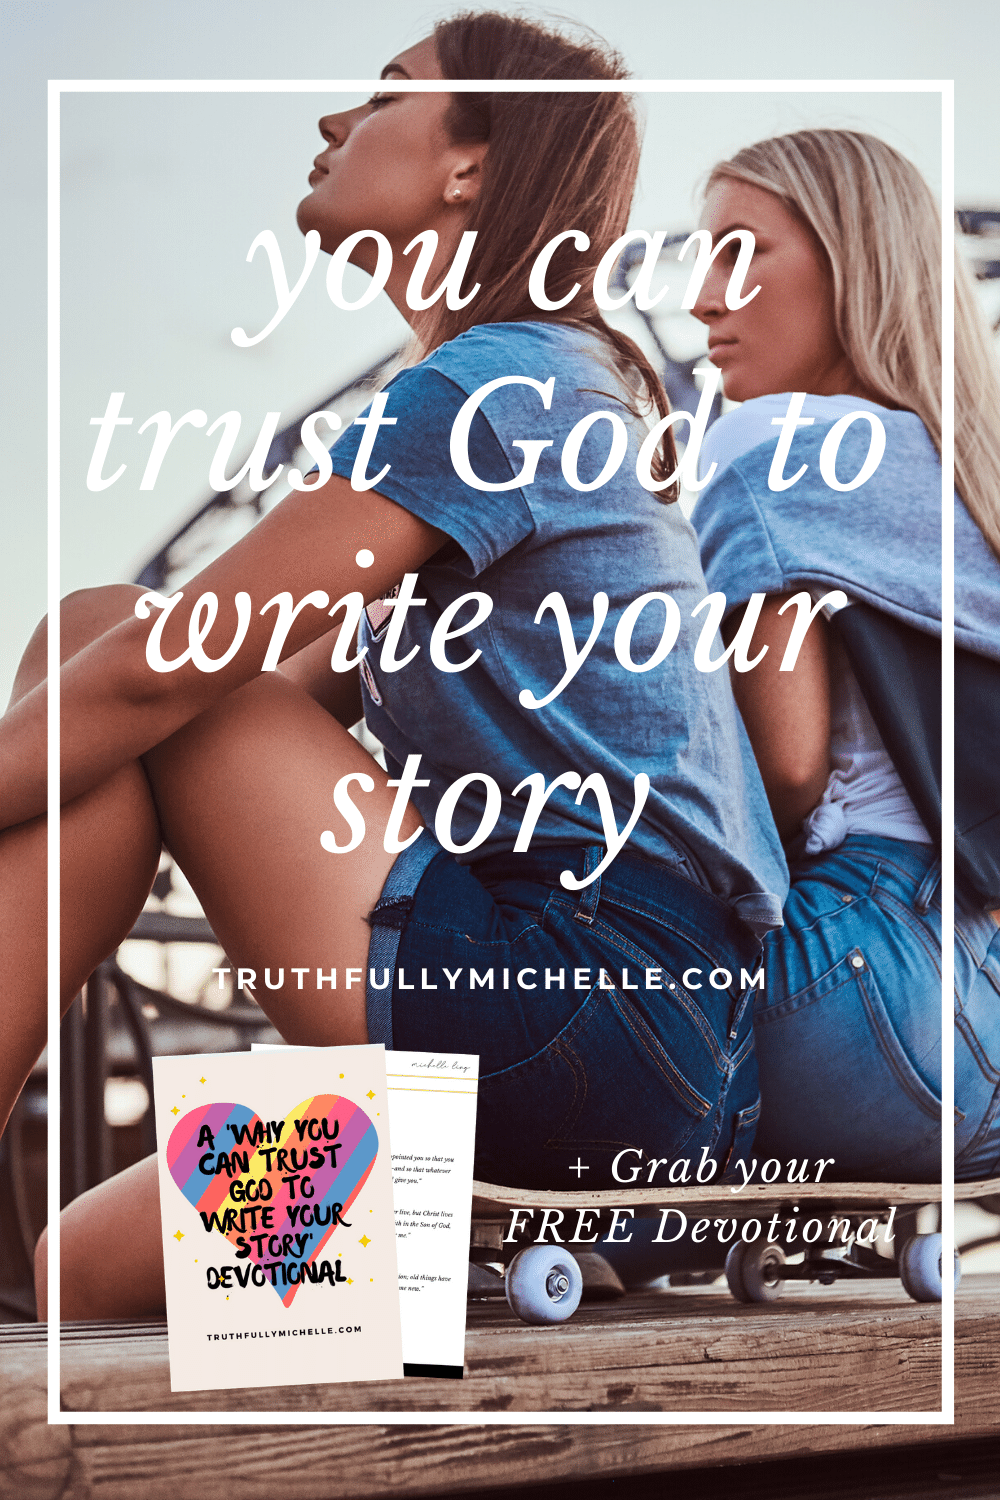 God is still writing your story, you can trust God to write your story, God's not done writing your story, God is writing your story, God writes your story, trust God to write your story